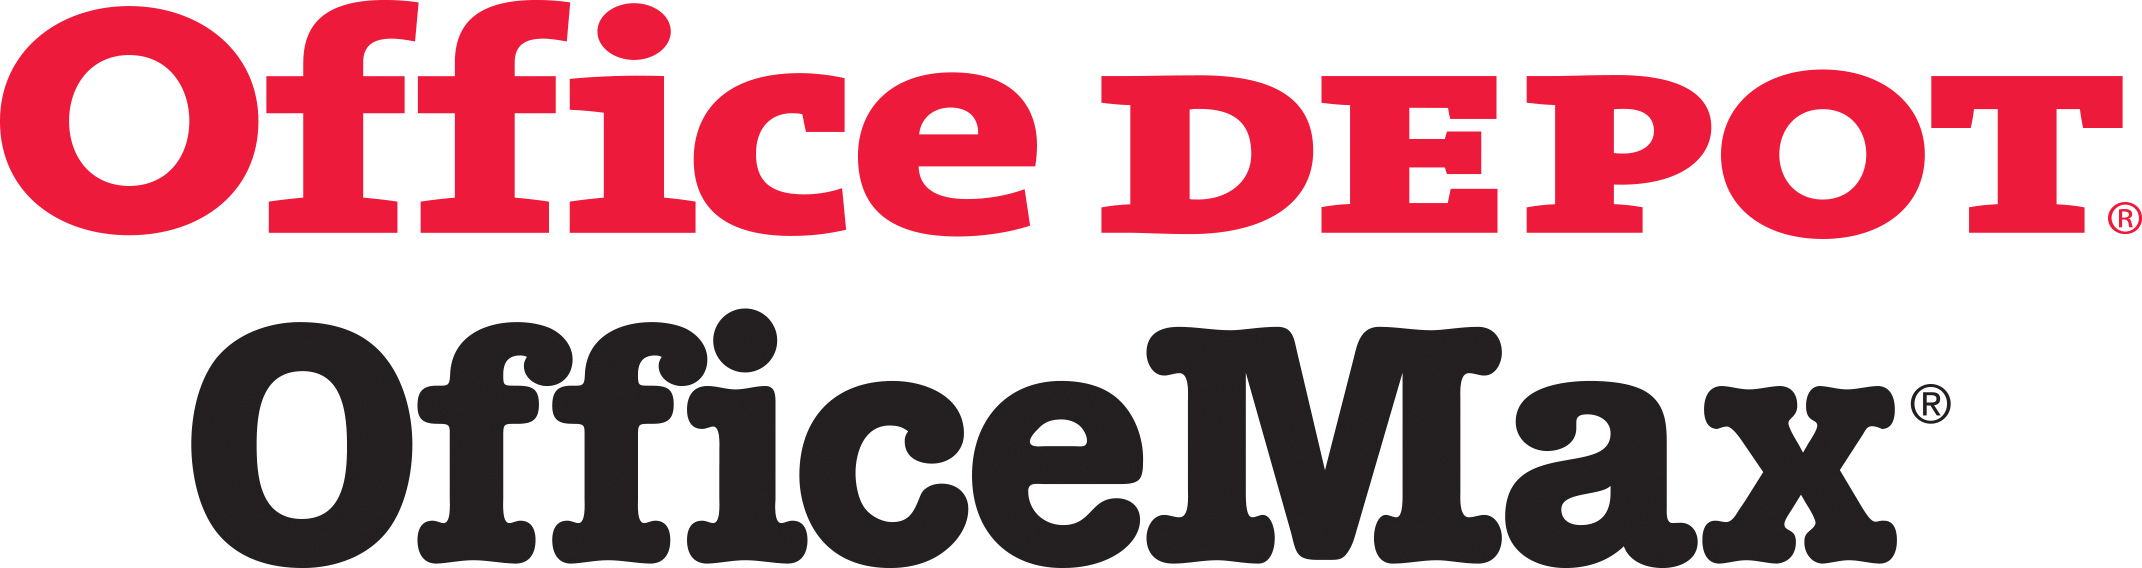 Color printing office depot - Download Your Store Purchasing Card And Start Saving Today